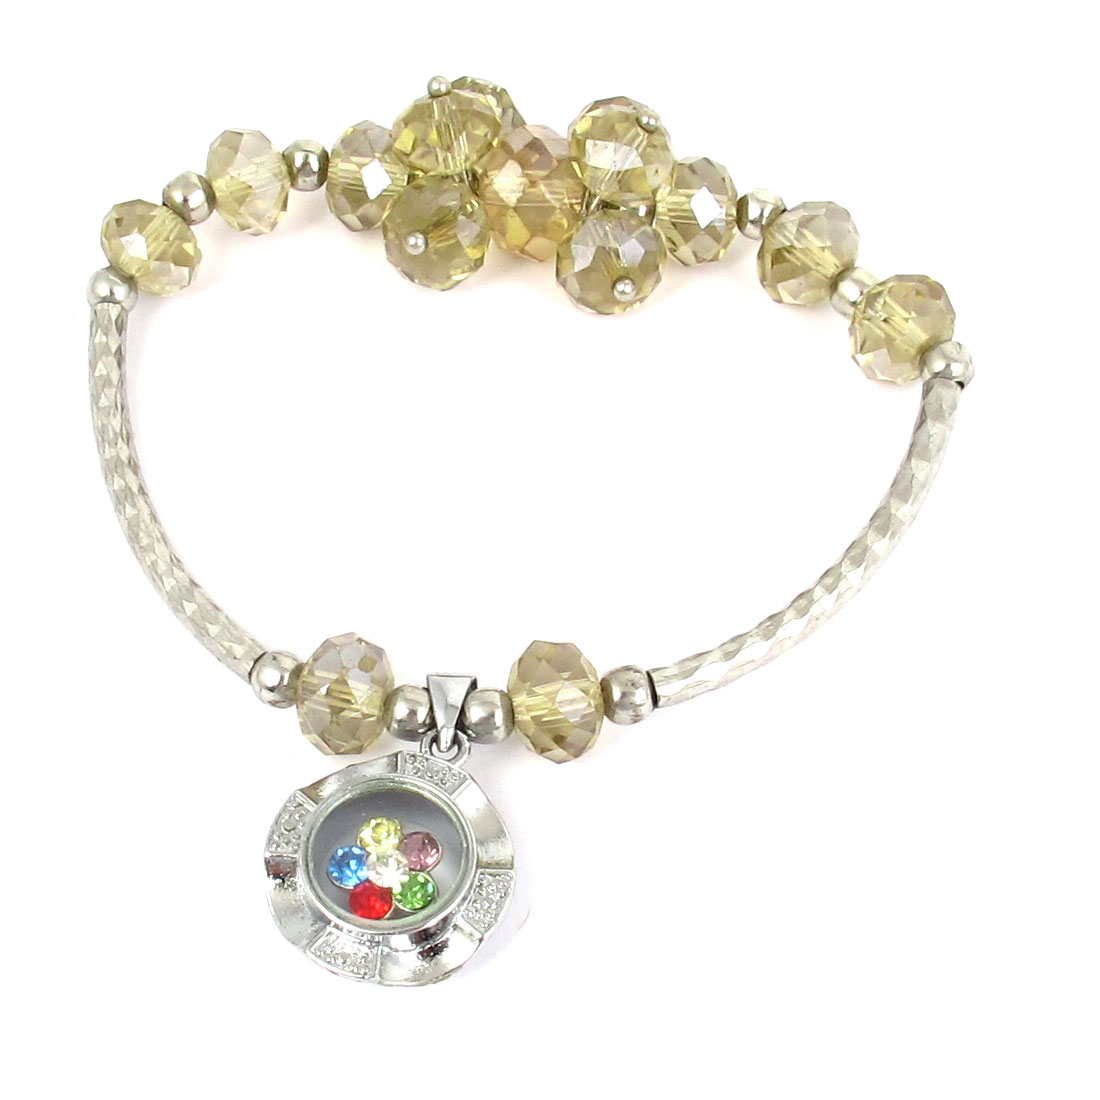 Plastic Faux Faceted Crystal Beads Lucky Pendant Elastic Wrist Ornament Bangle Bracelet Champagne